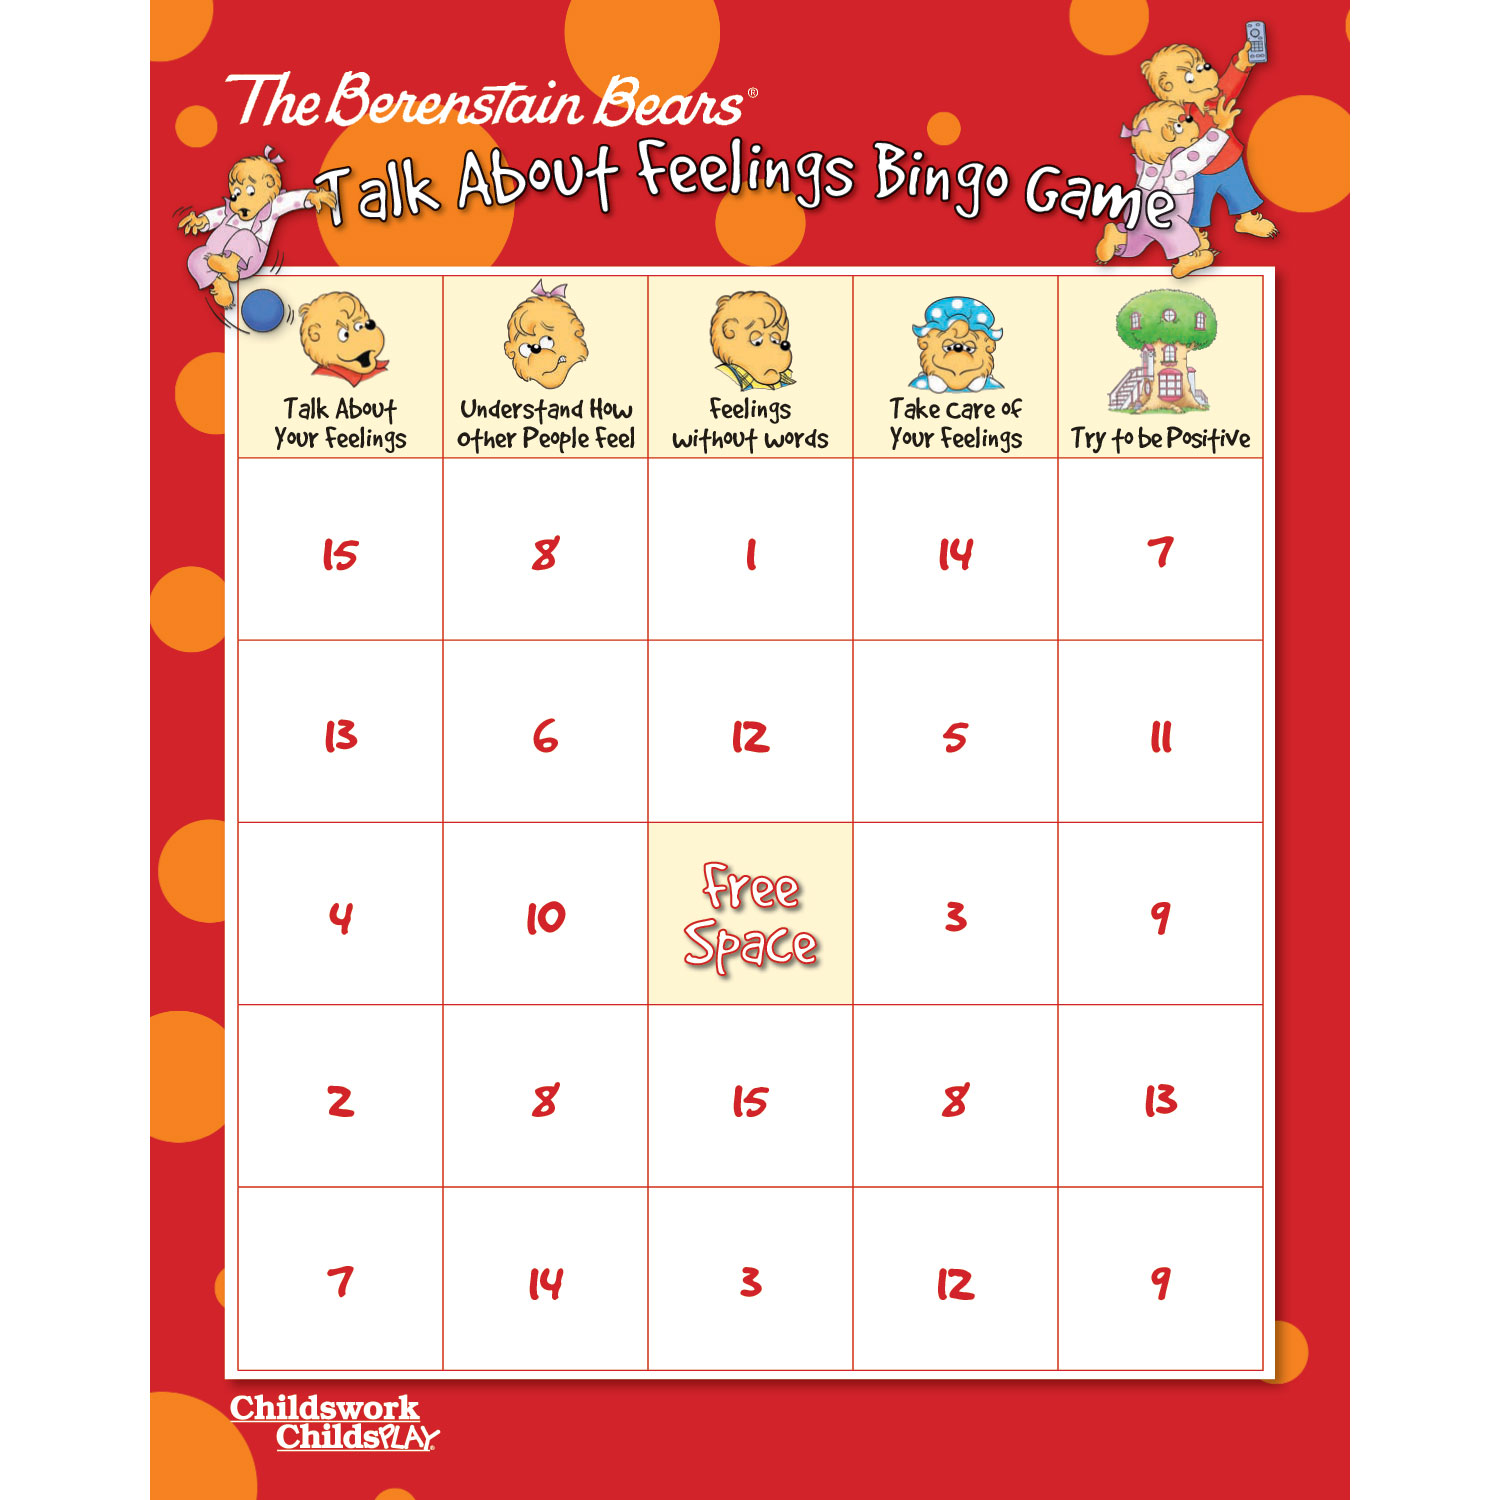 The Berenstain Bears Talk About Feelings Bingo Game